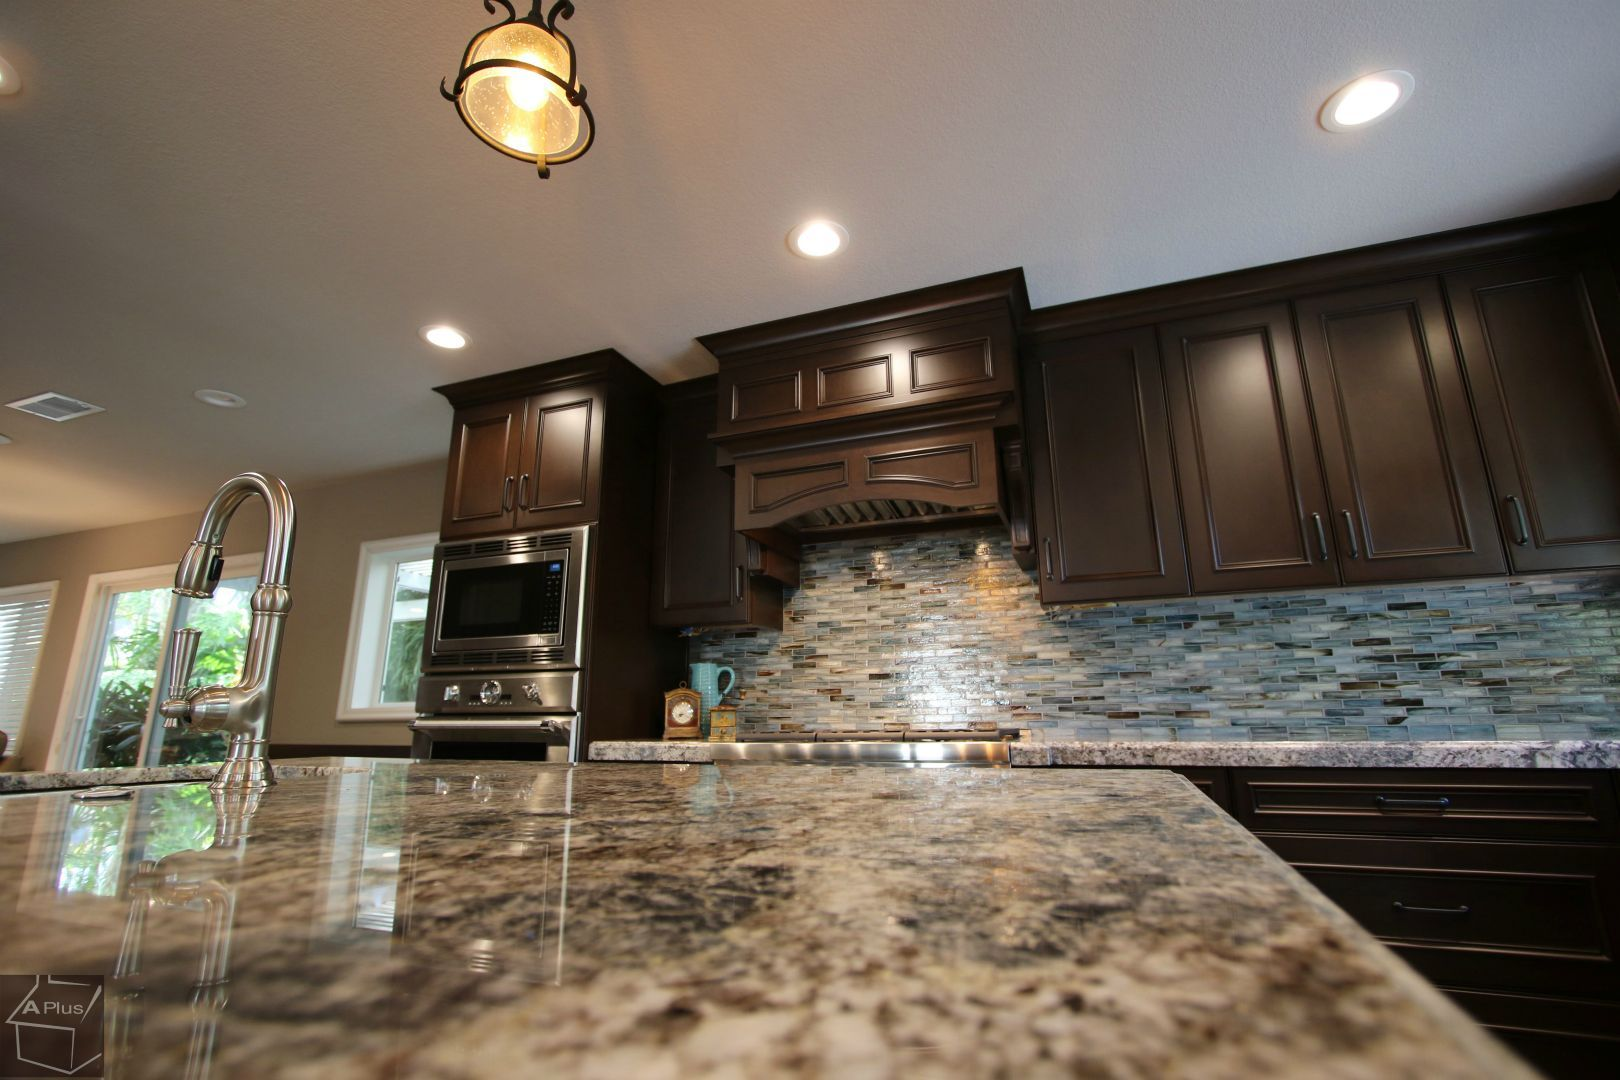 Design Build Traditional #Kitchen #Remodel with APlus ...